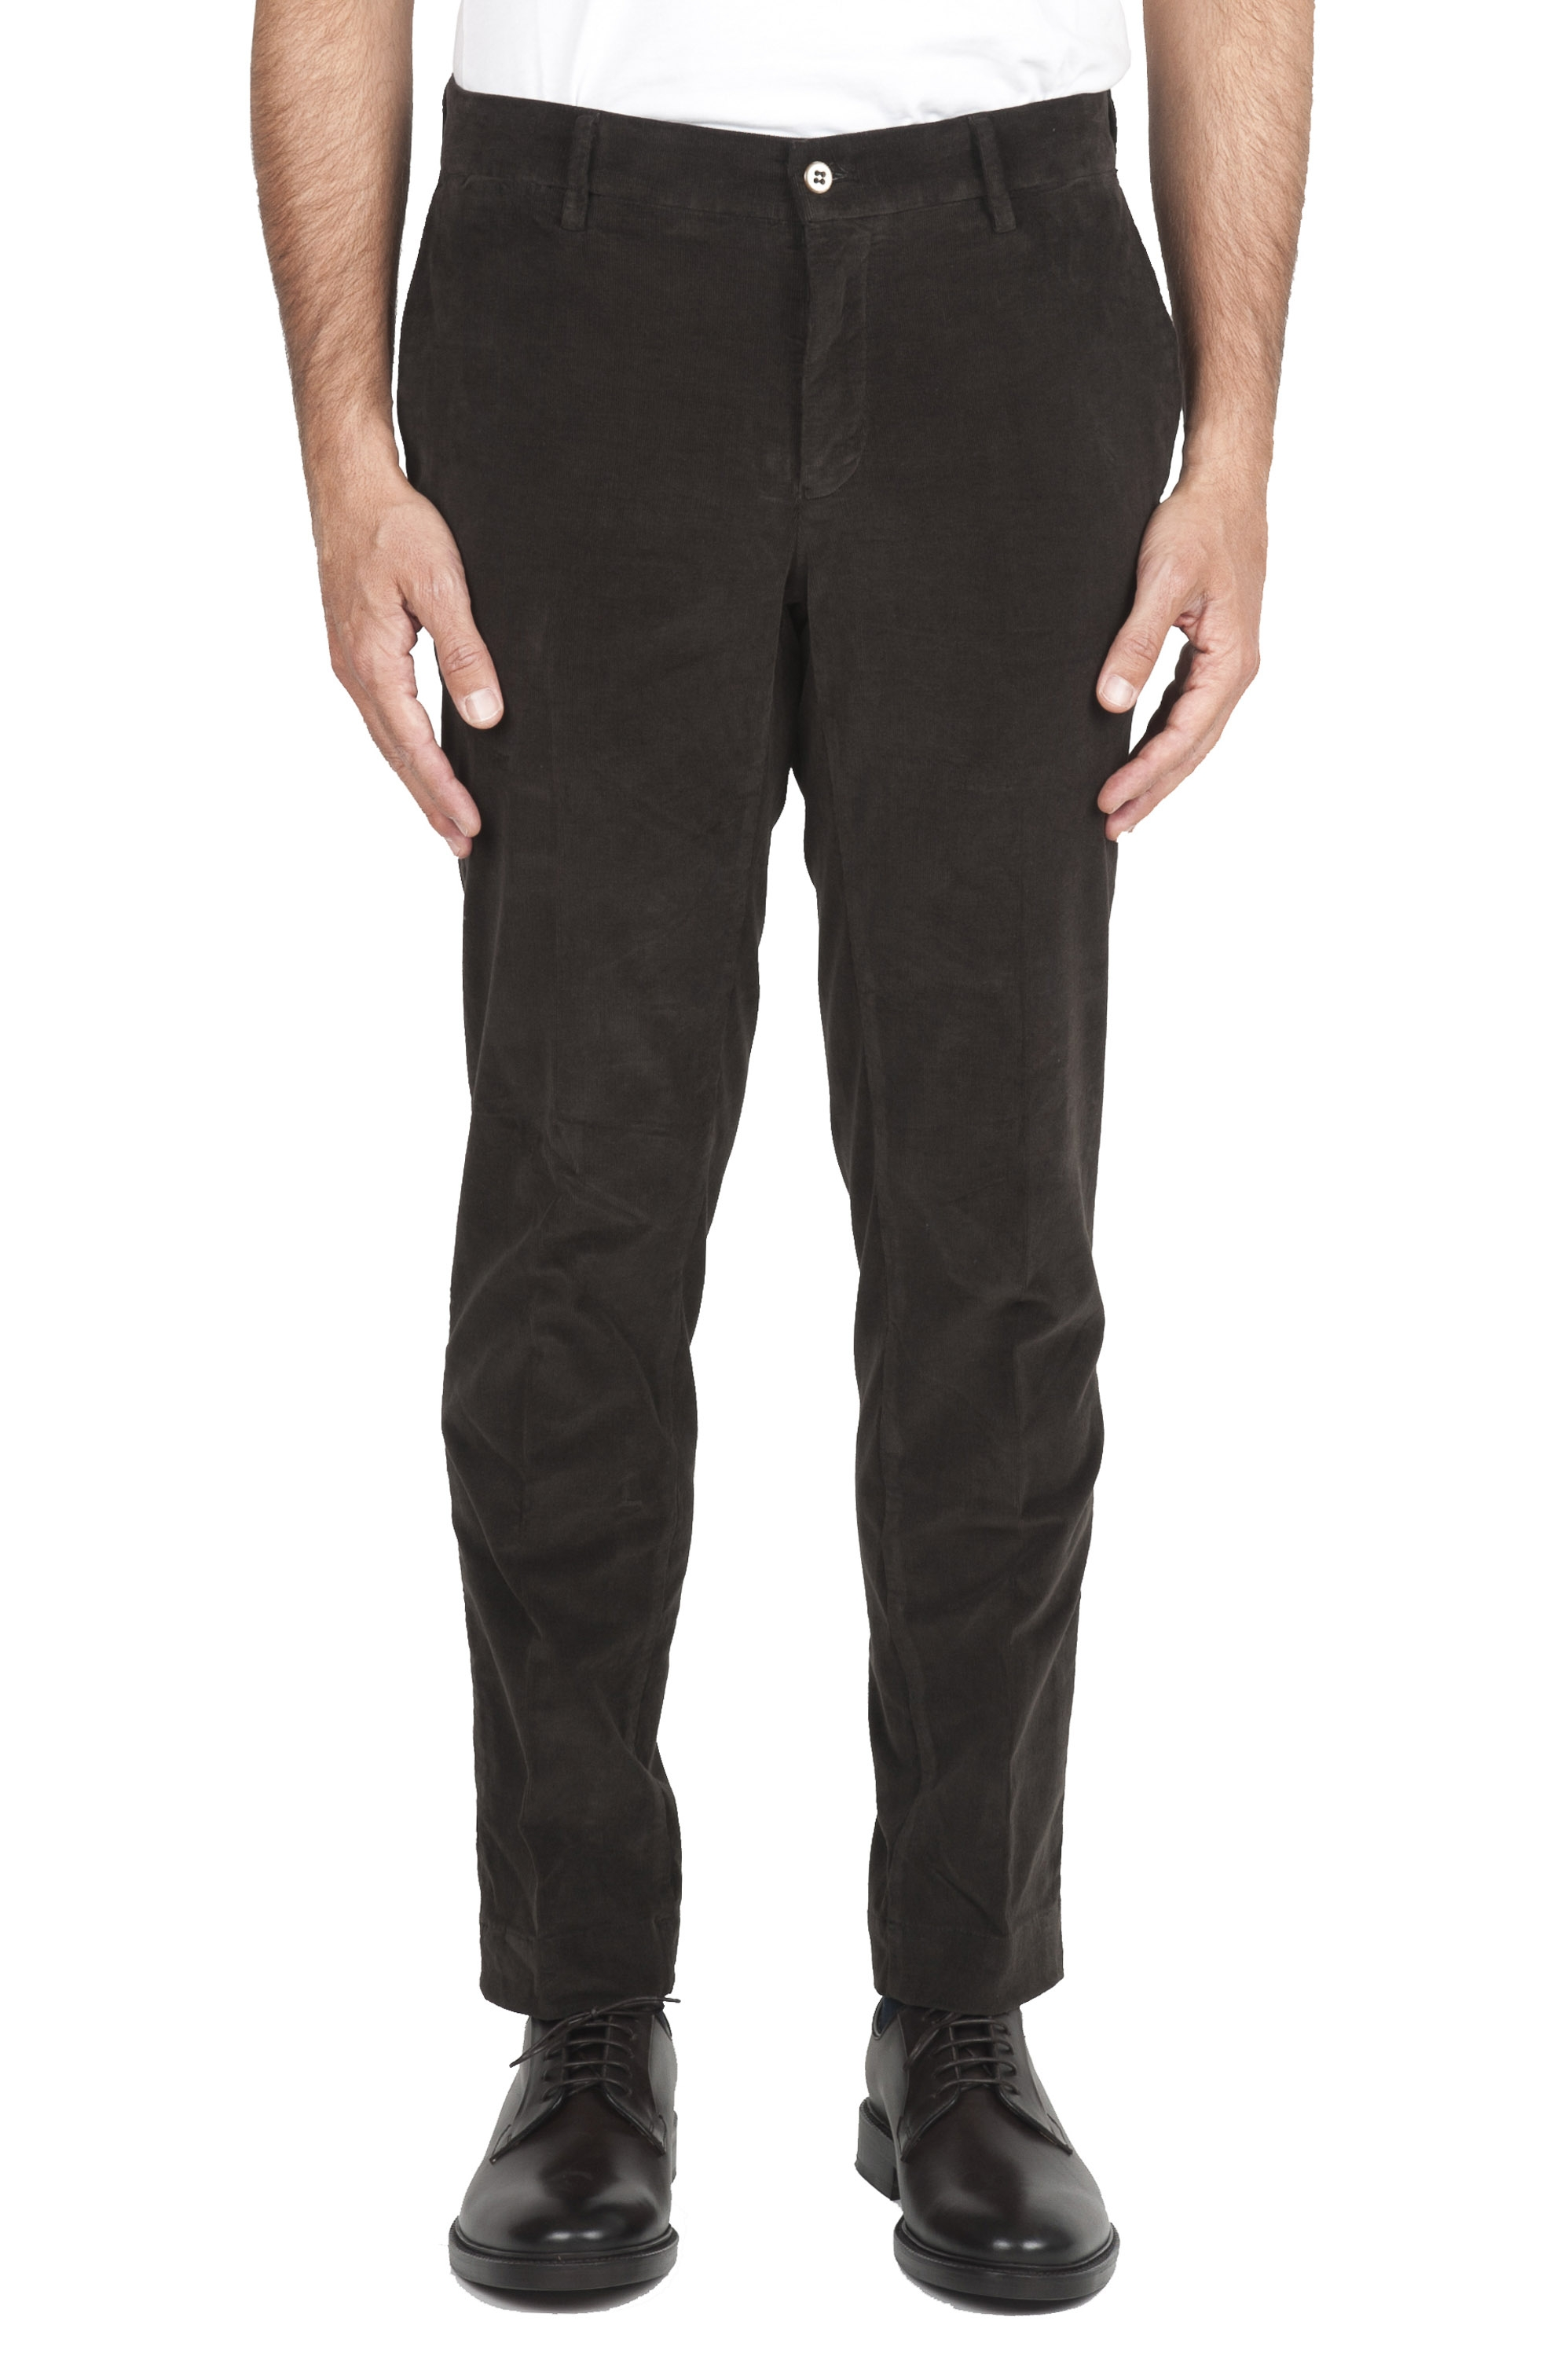 SBU 01547 Pantalon chino classique en coton stretch marron 01